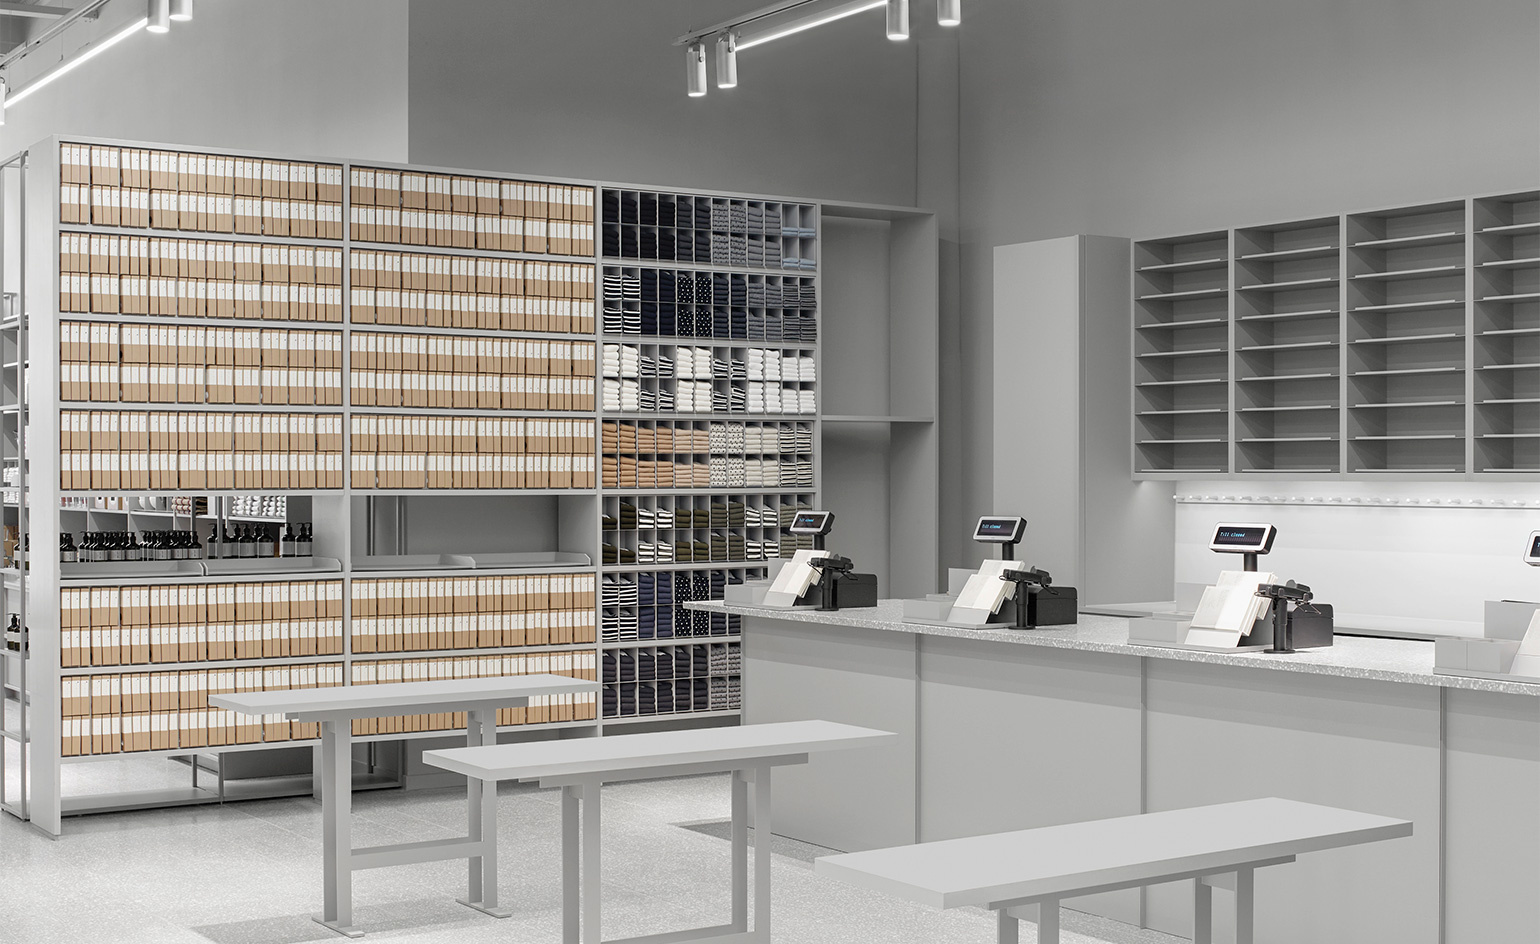 0e9e4f10831 At the Arket store, products are displayed cross cool grey shelves and  rails made up of simple repeating grids and vertical and horizontal planks.  '